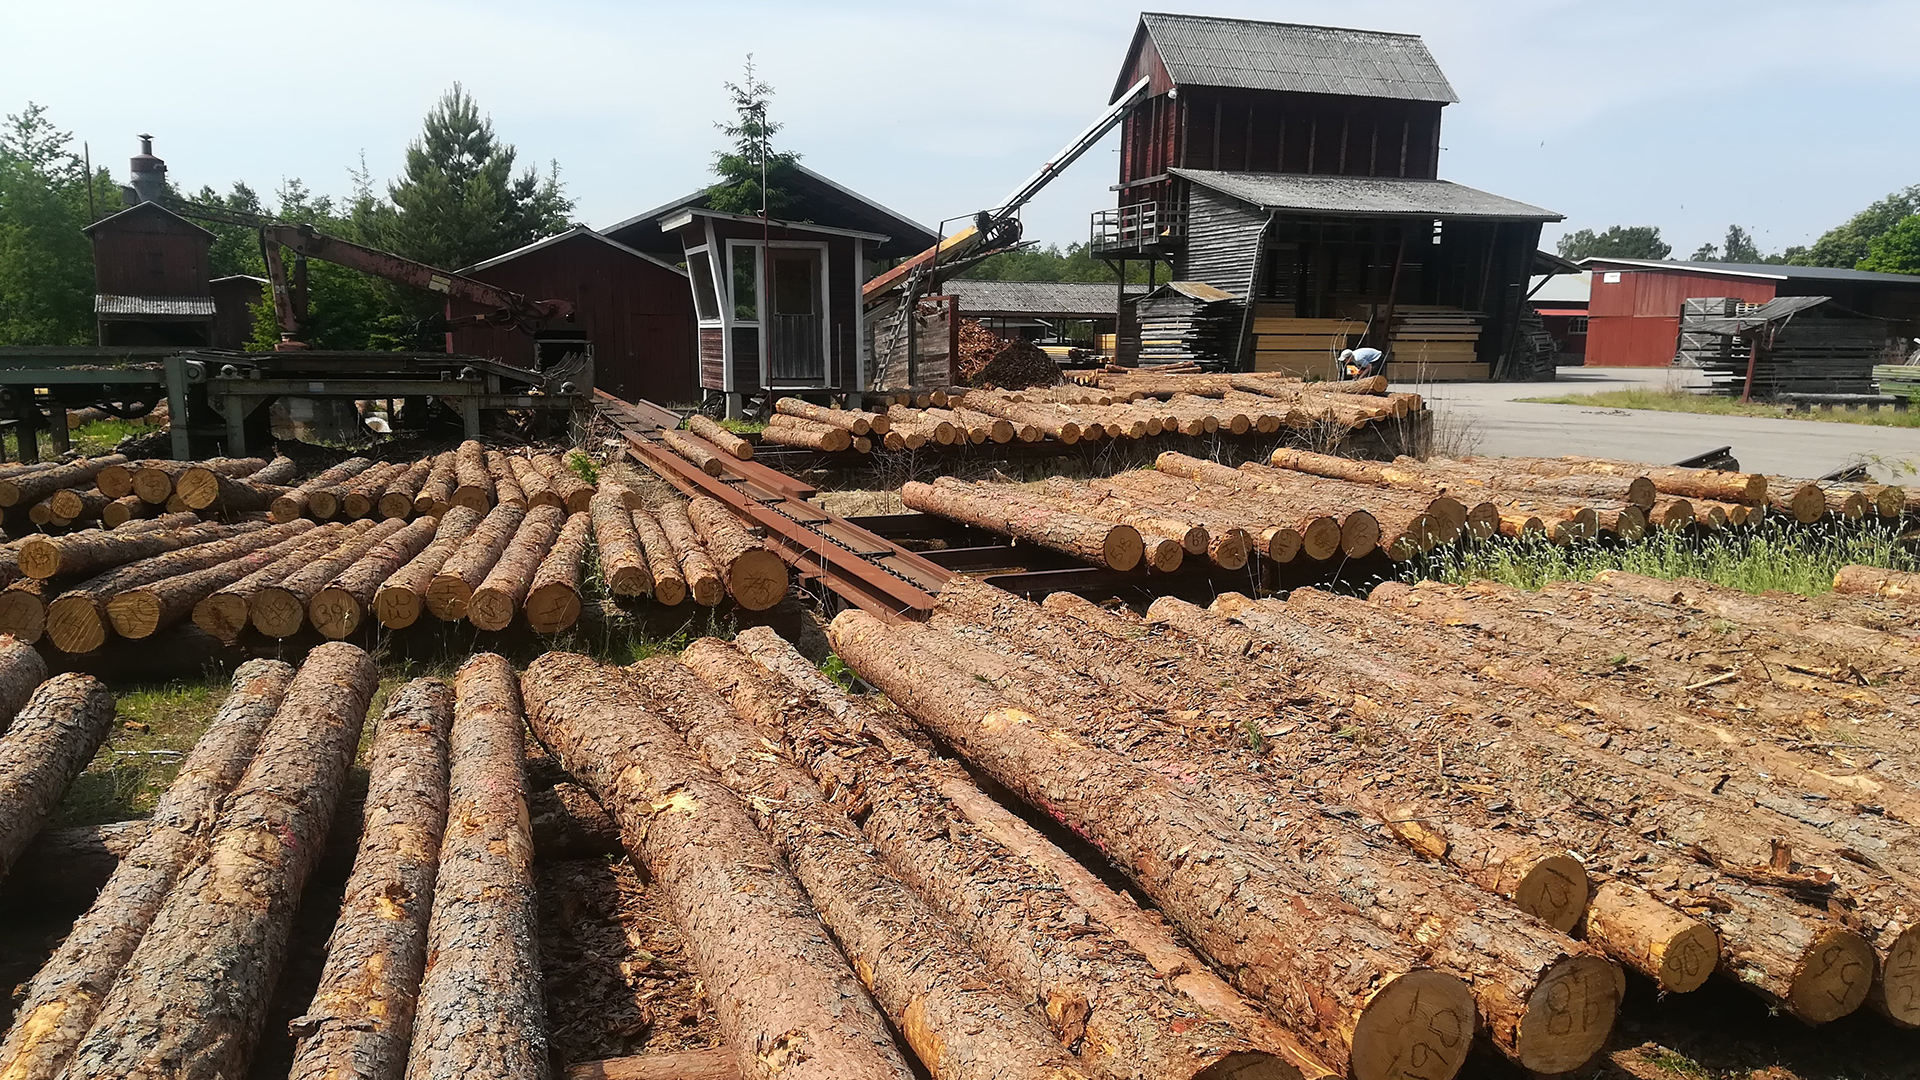 Scots pine logs in a sawmill - Irena Fundová used logs as reference to assess wood quality in standing trees (photo: Irena Fundová)